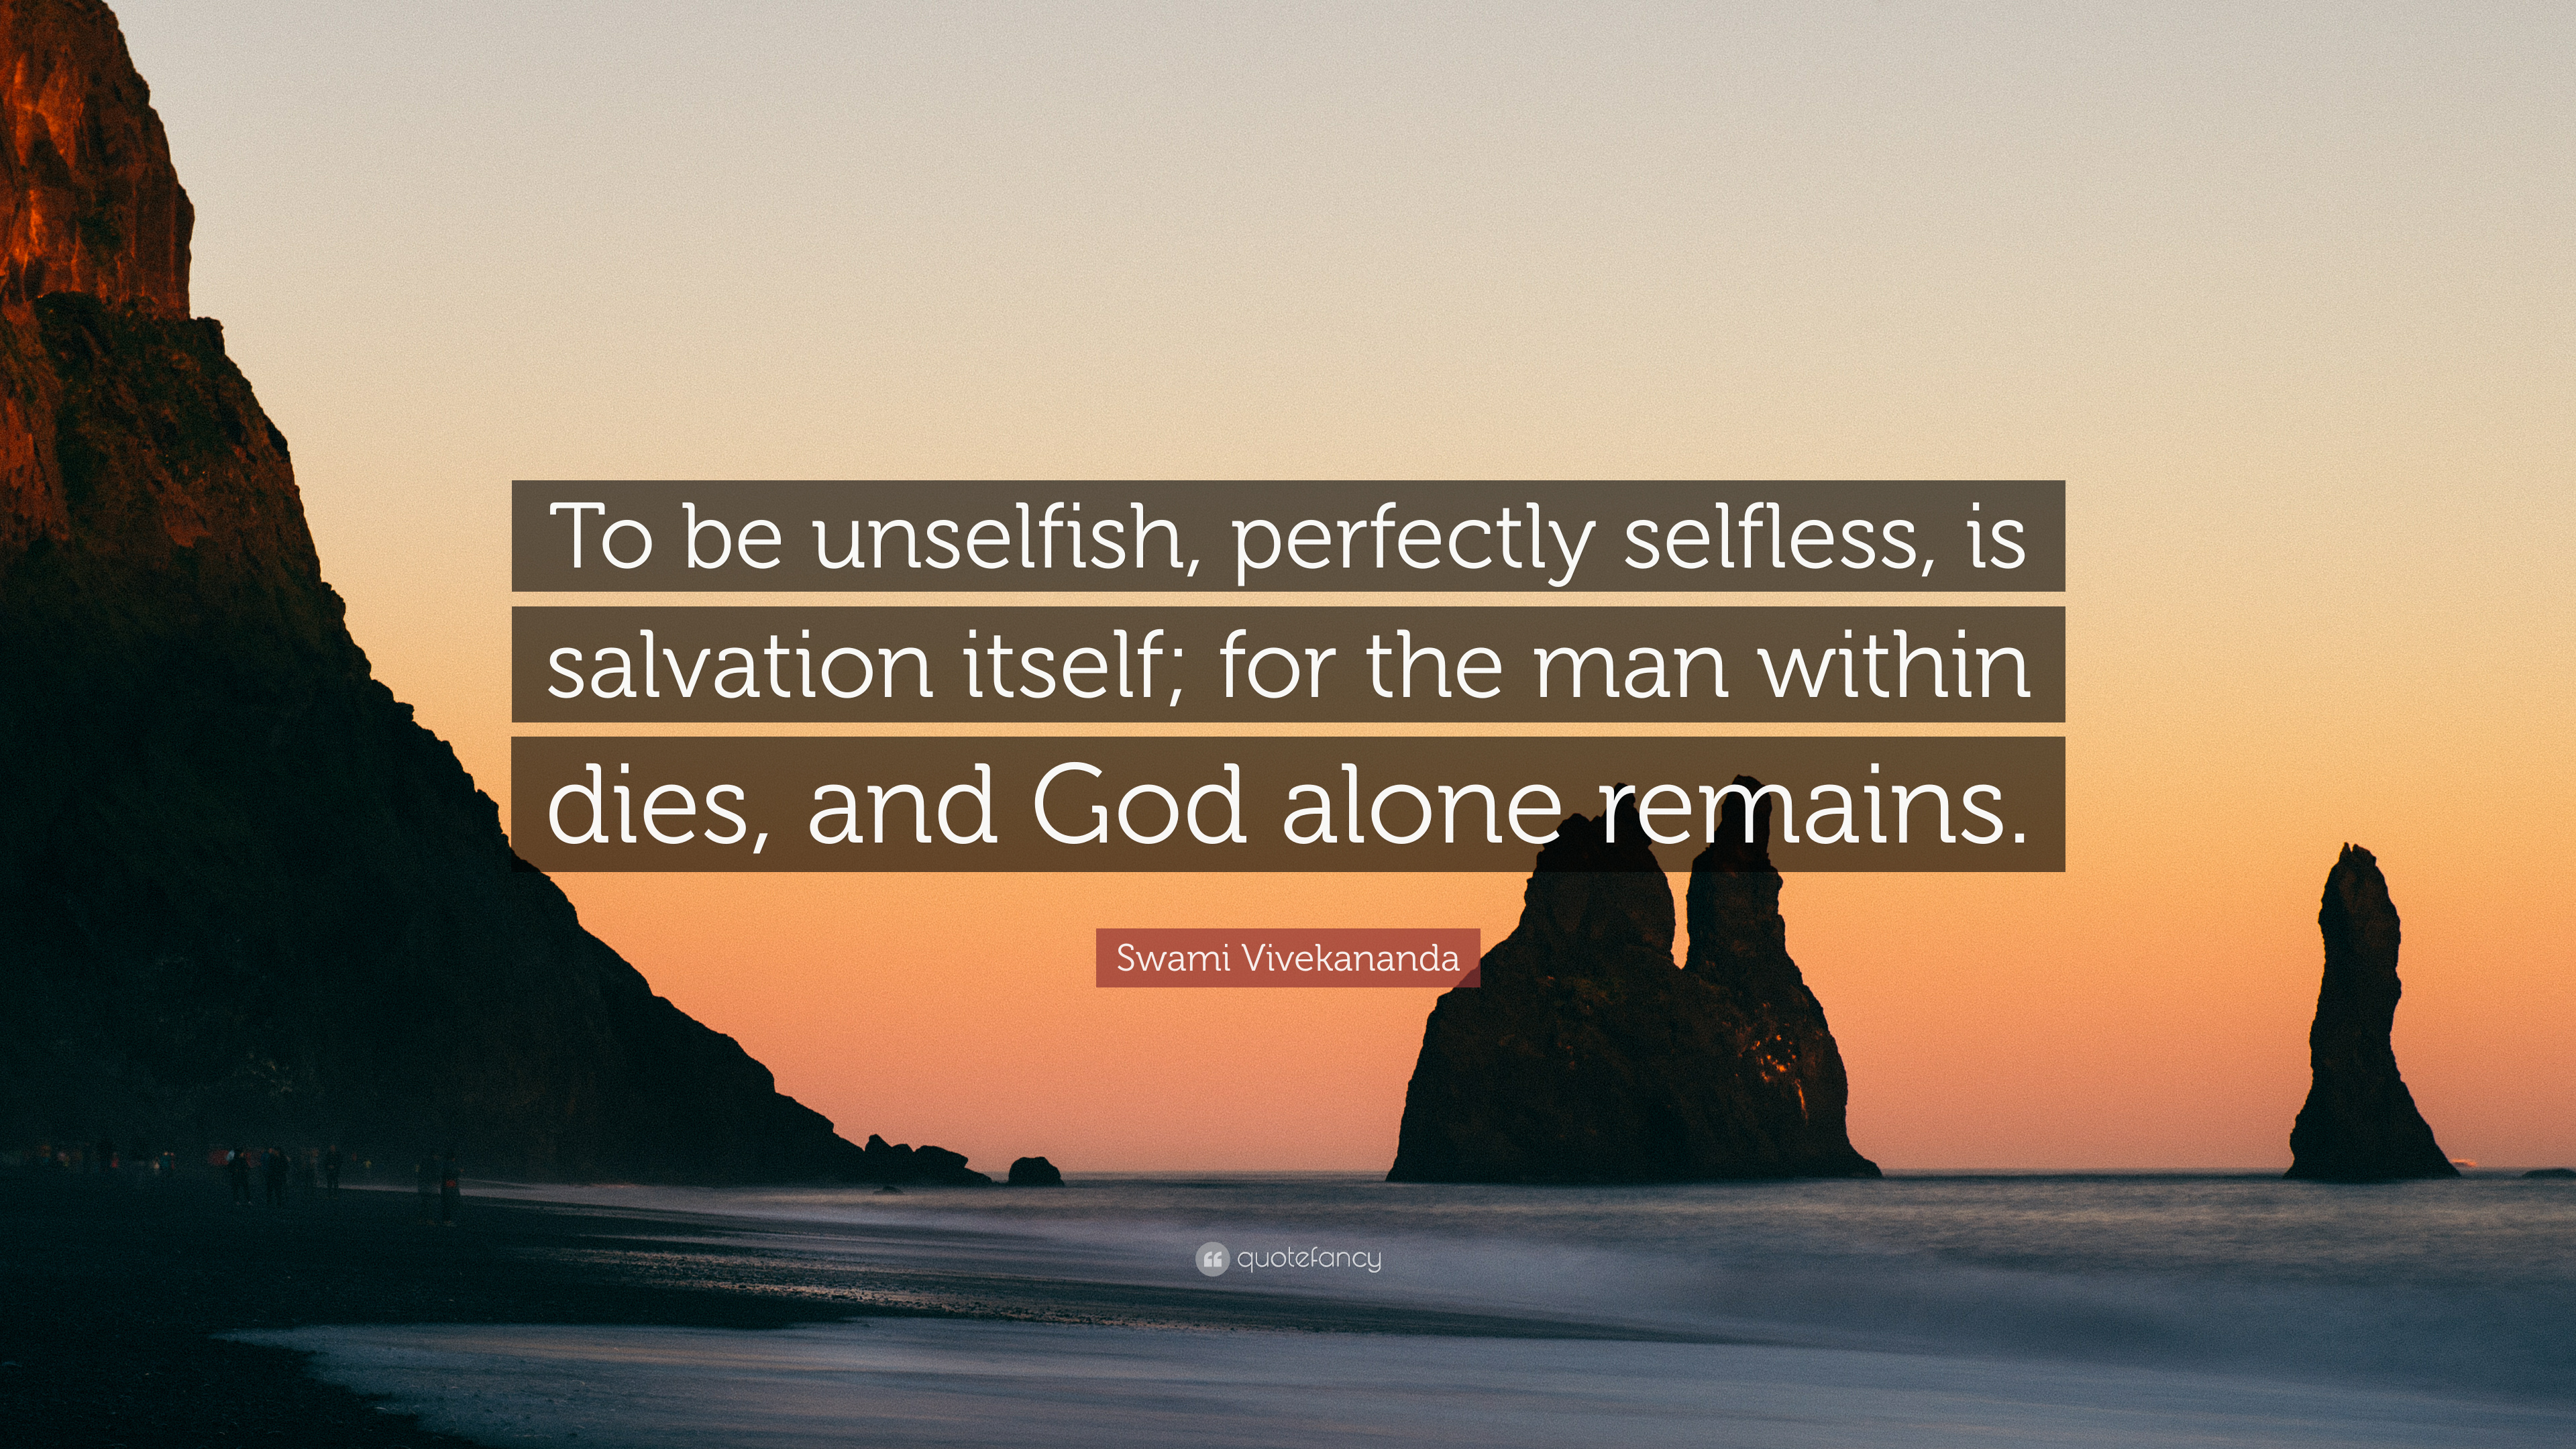 3783894-Swami-Vivekananda-Quote-To-be-unselfish-perfectly-selfless-is (1)